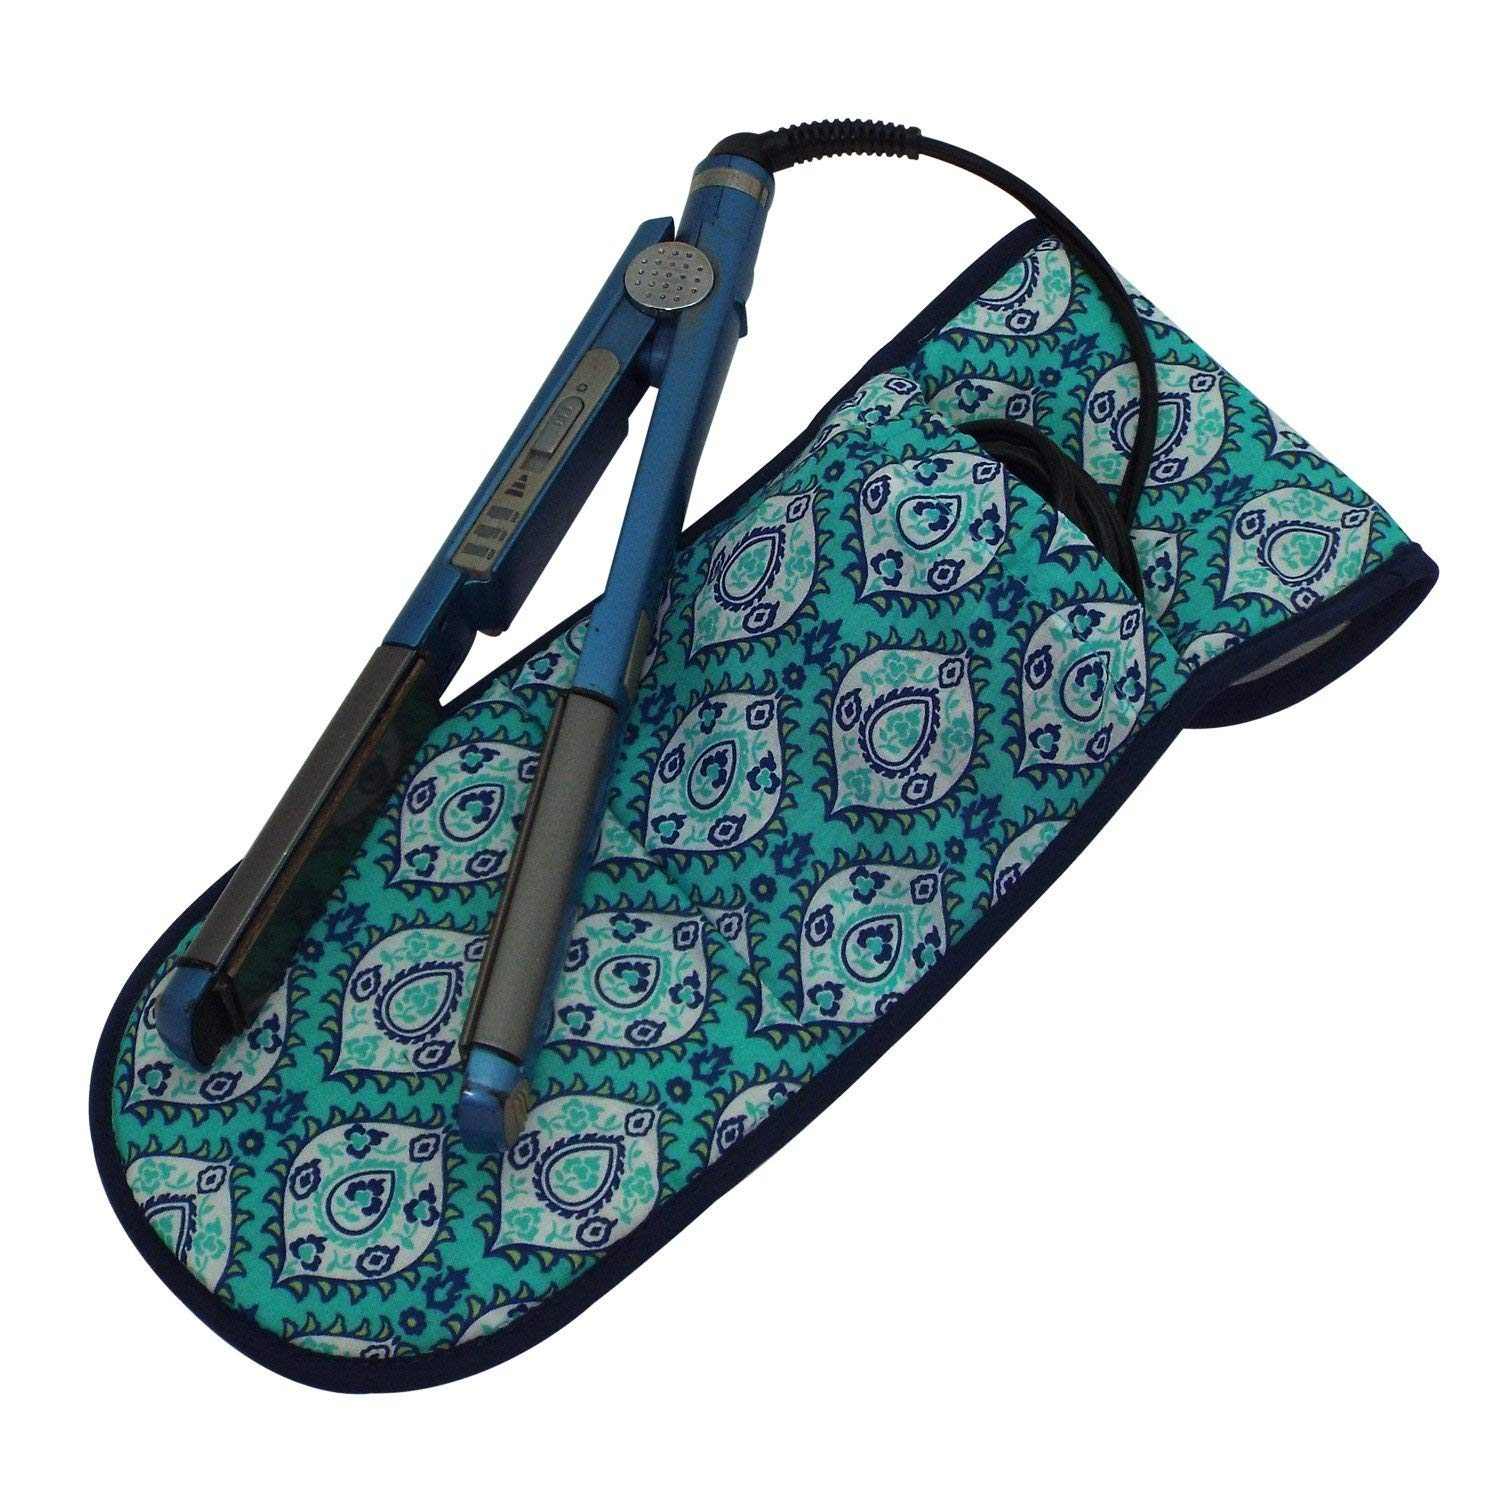 Blue and Silver Ikat Chevron with Black Piping Black Heat-resistant Flat Iron Cover